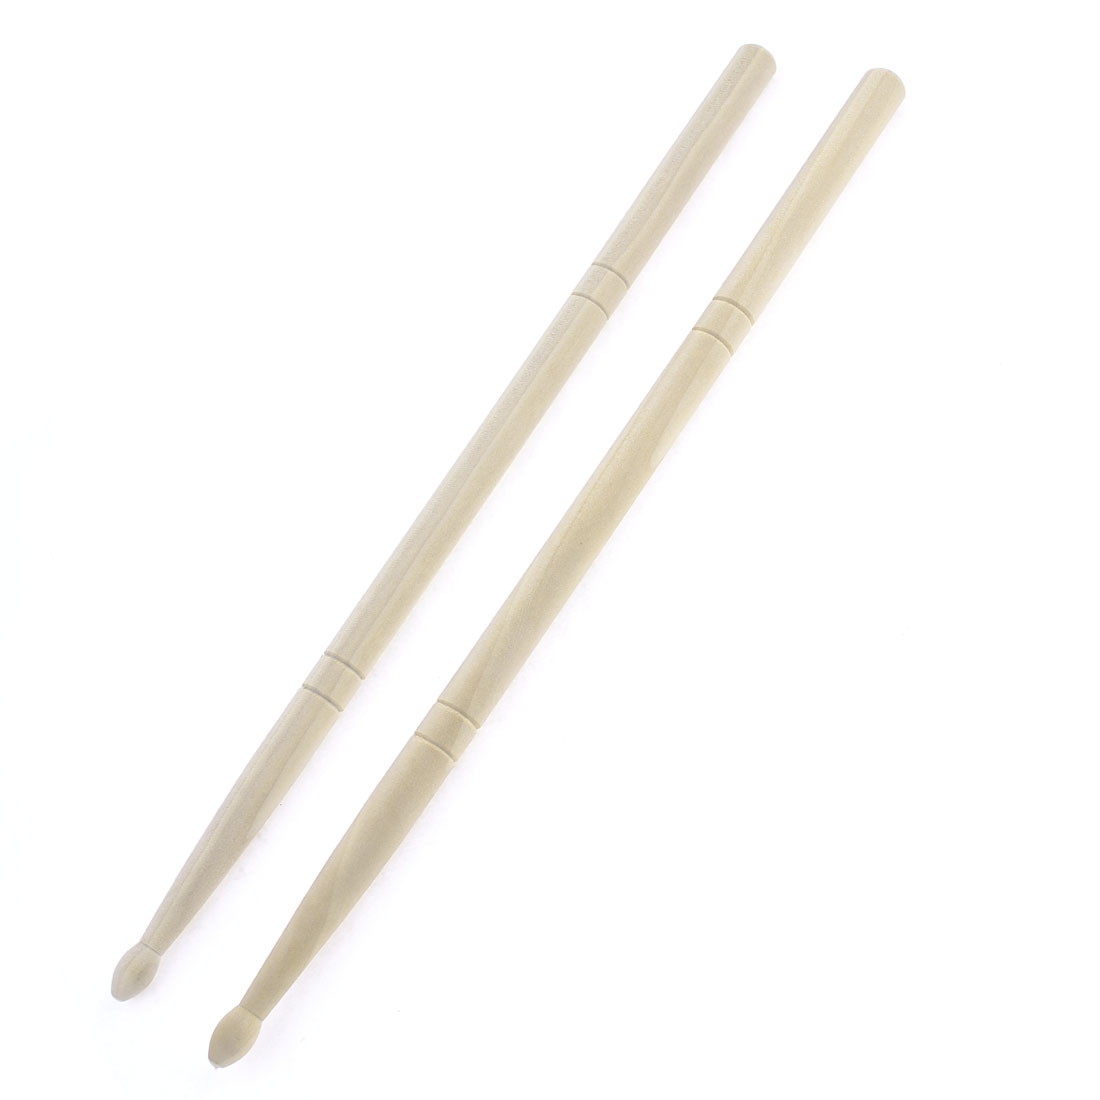 2Pcs 34.5cm Long Wood Chinese Lion Dance Drum Sticks Drumsticks